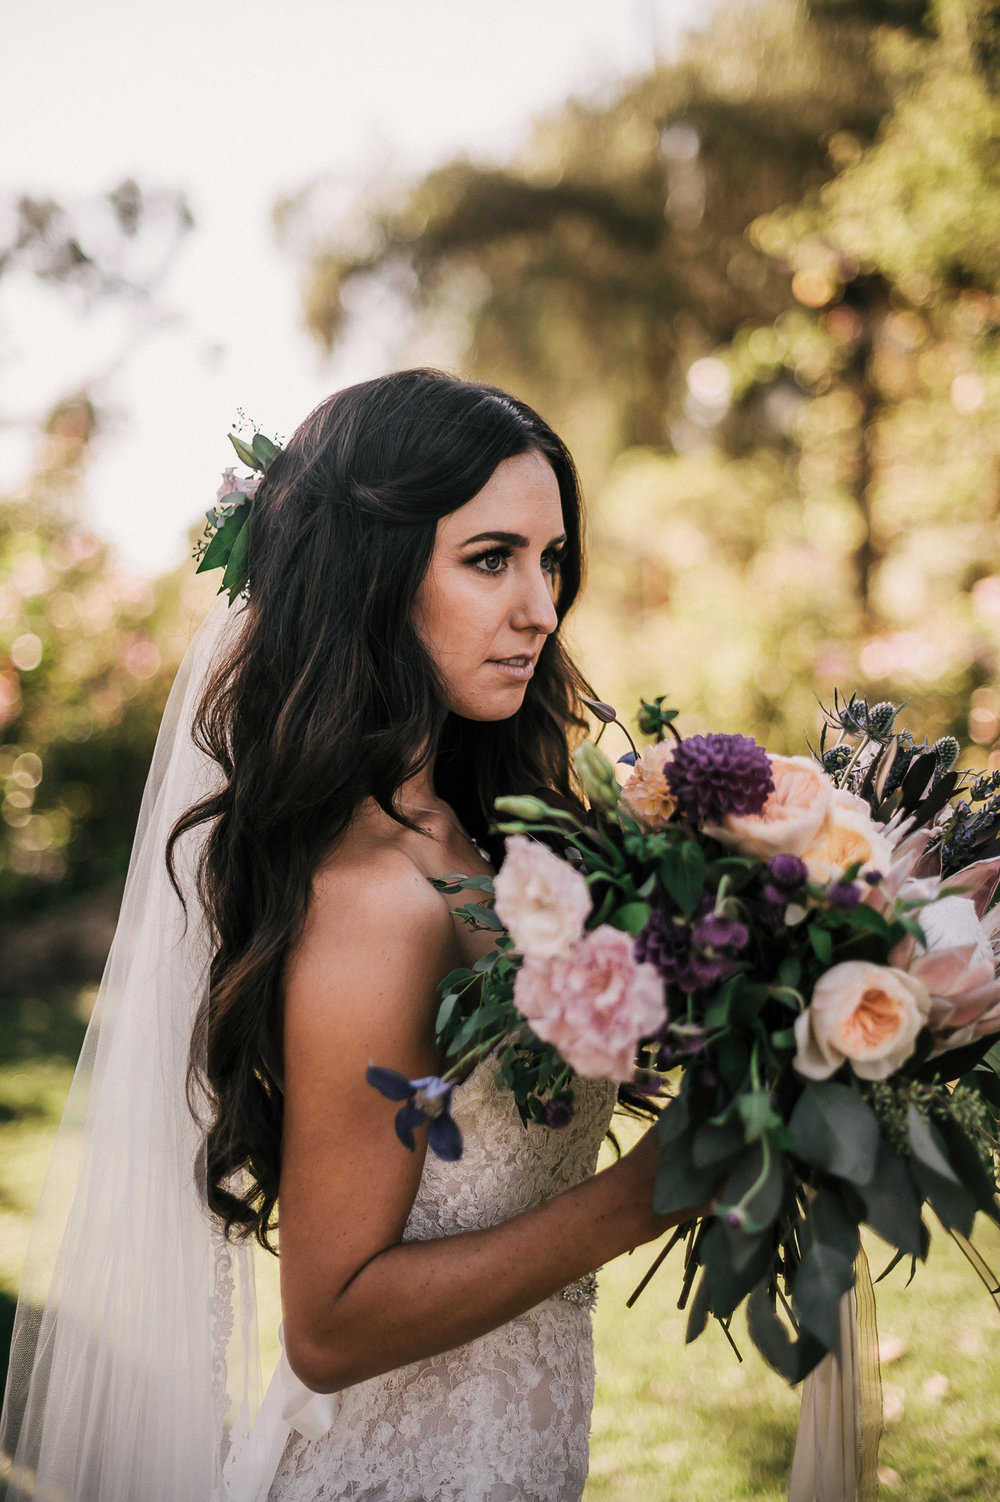 Bride shows off her beautiful bouquet with eucalyptus details in the golden light of sunset.